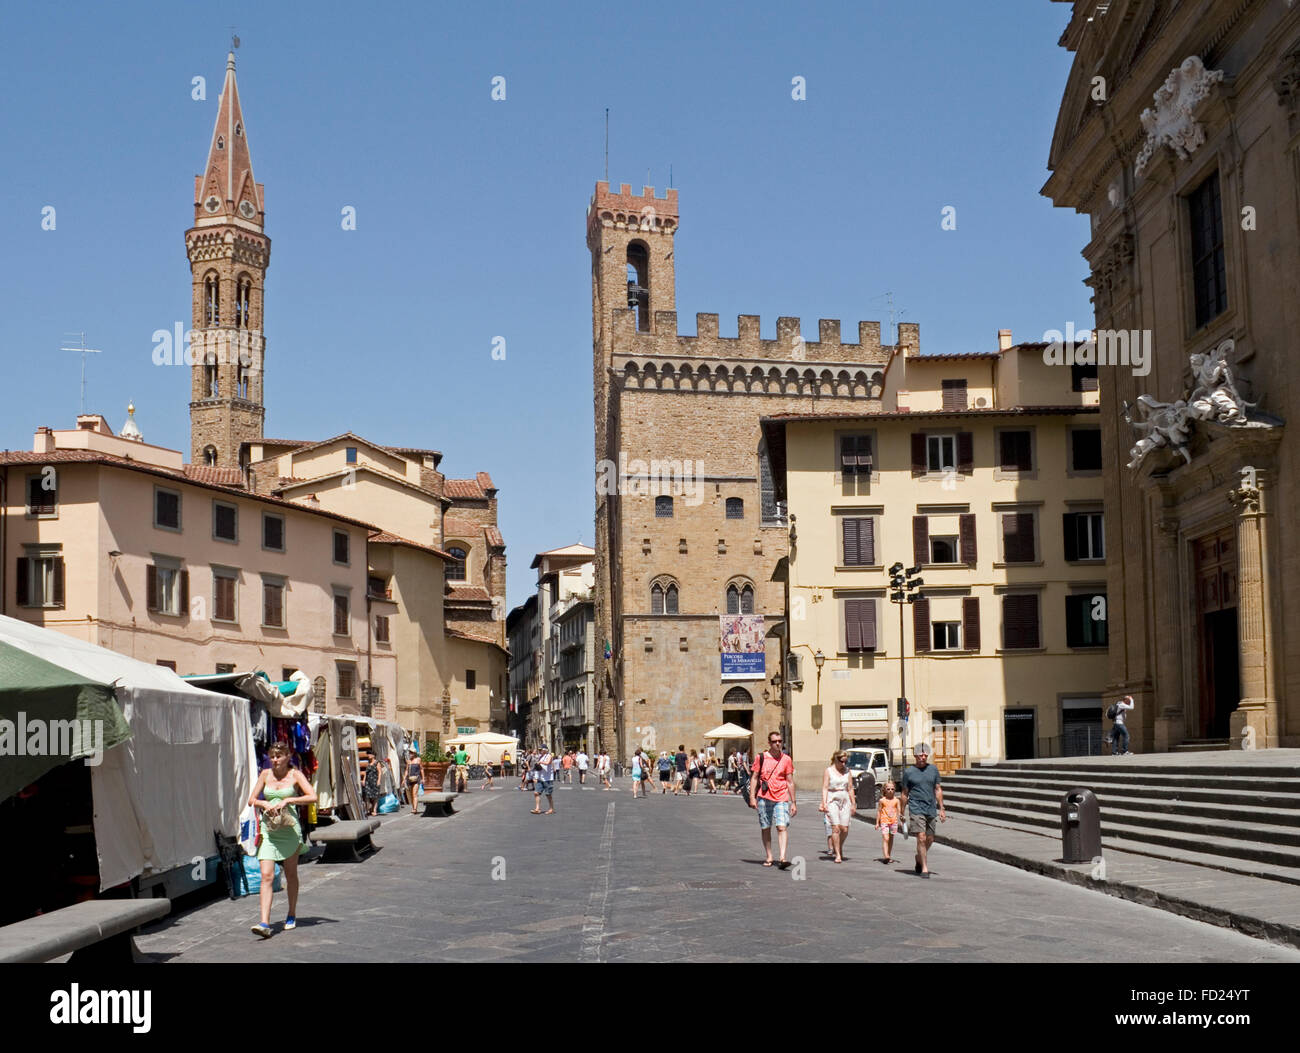 Piazza San Firenze square with the church Badia Fiorentina and Palazzo Del Bargello, Florence, Italy - Stock Image